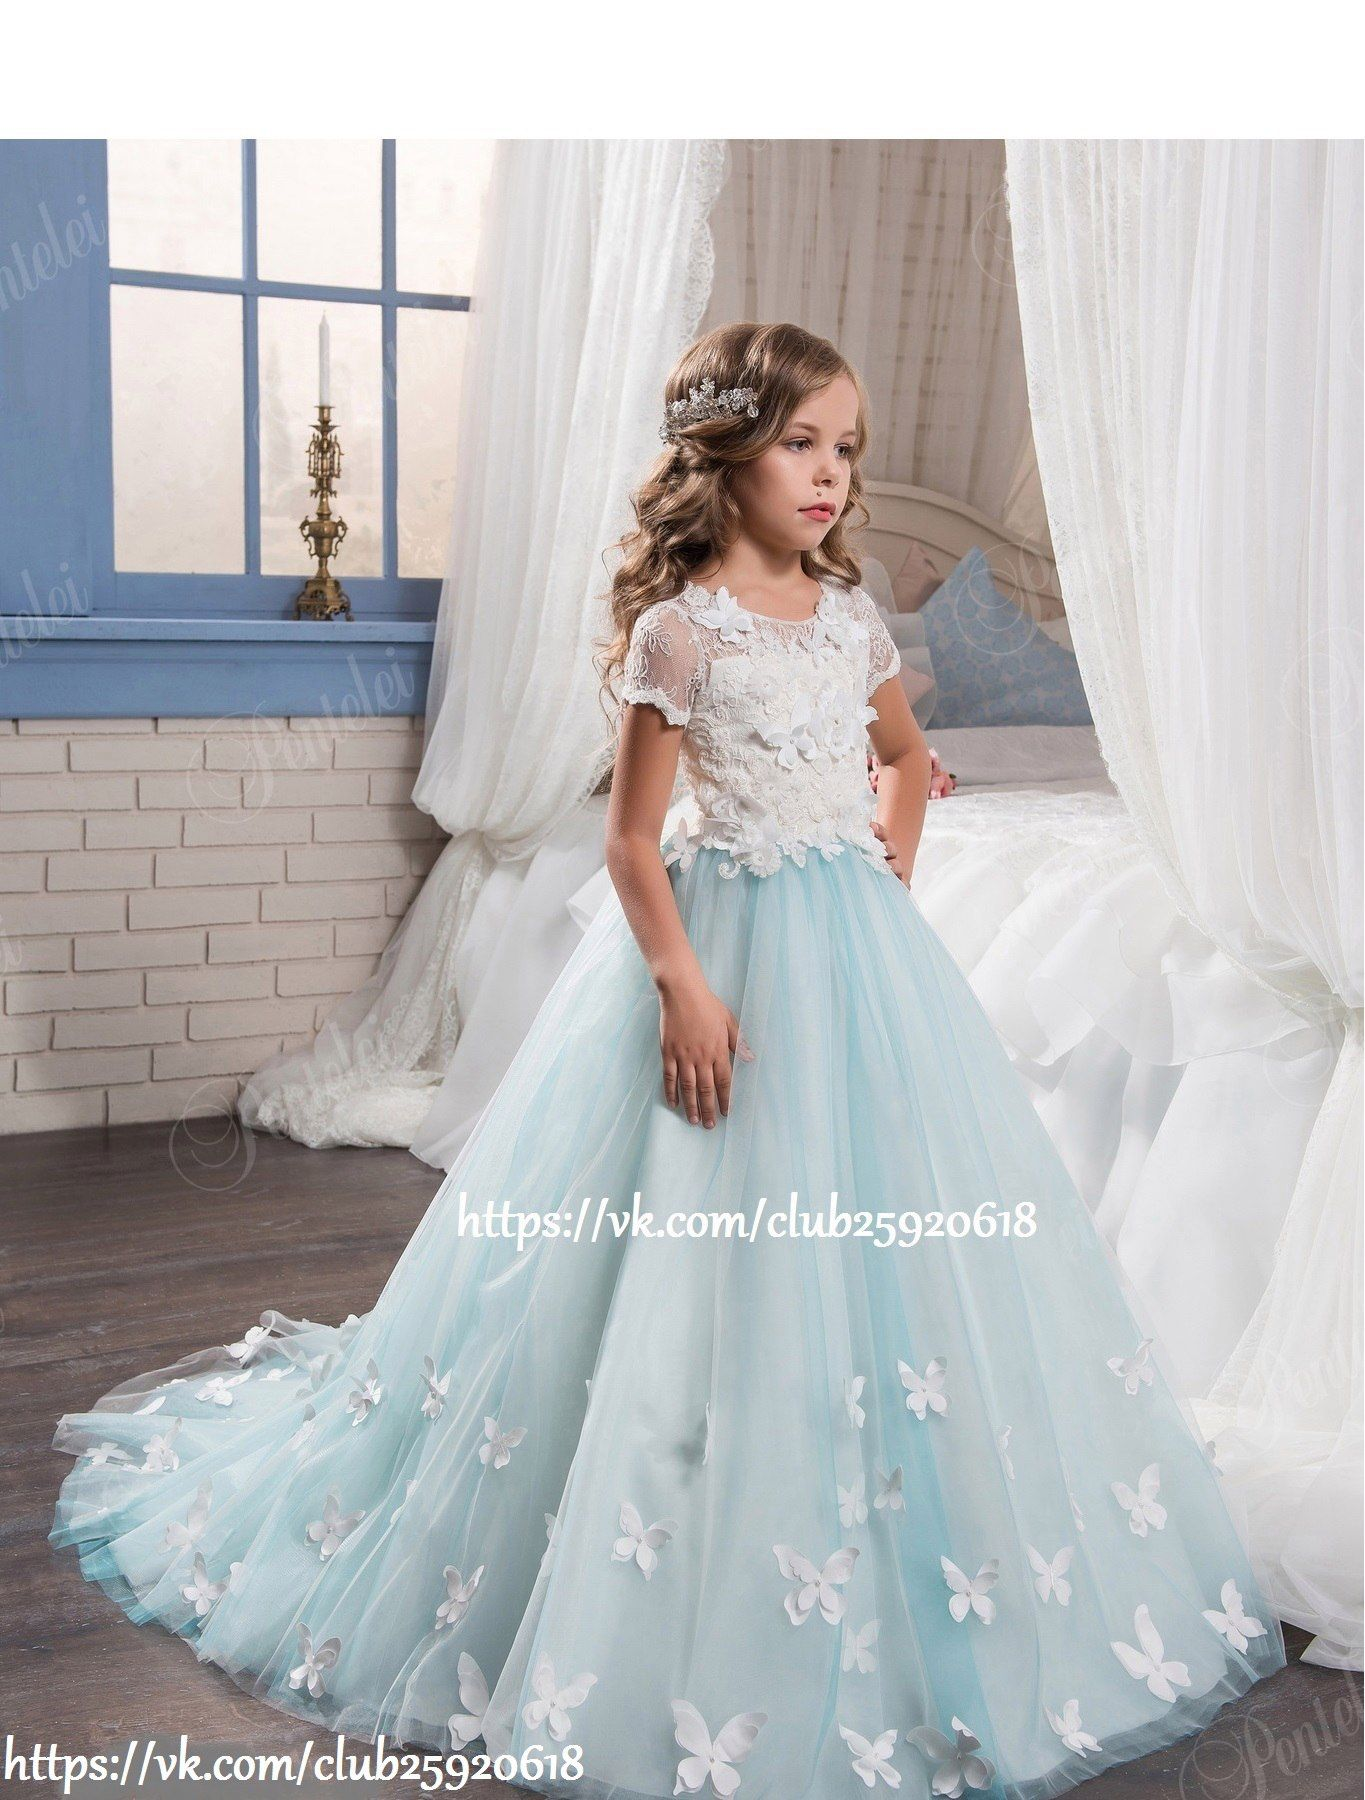 Pin by Lilia Lisaveta on Kids couture | Pinterest | Mariana ...